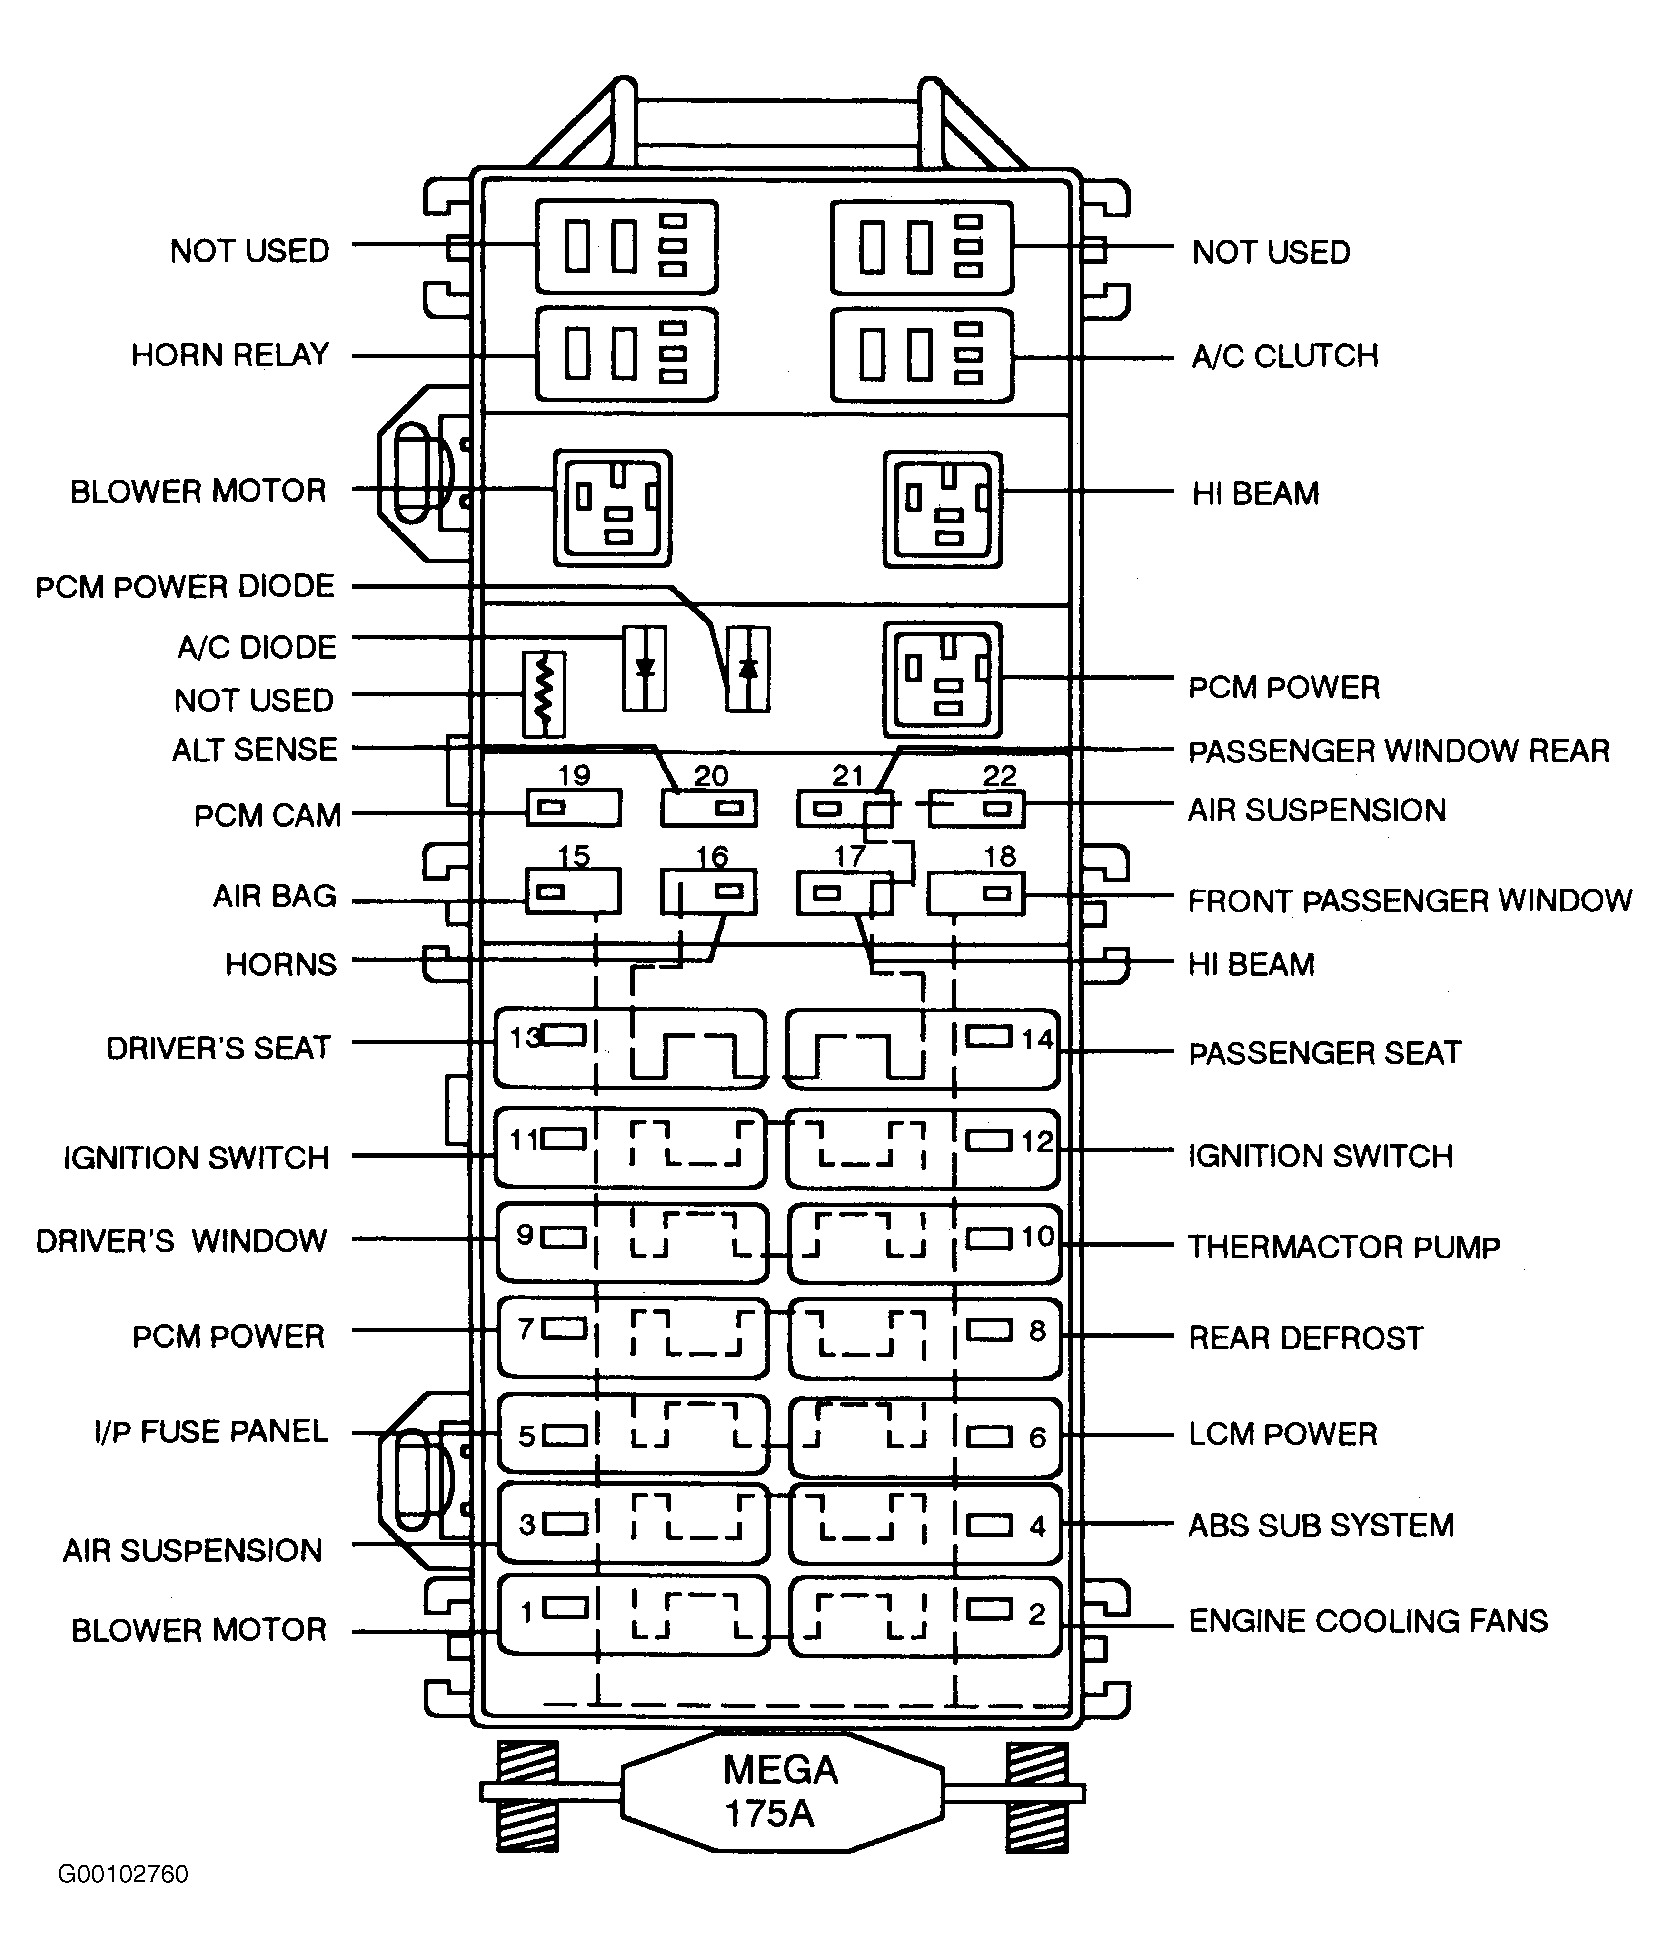 spal fan wiring diagram